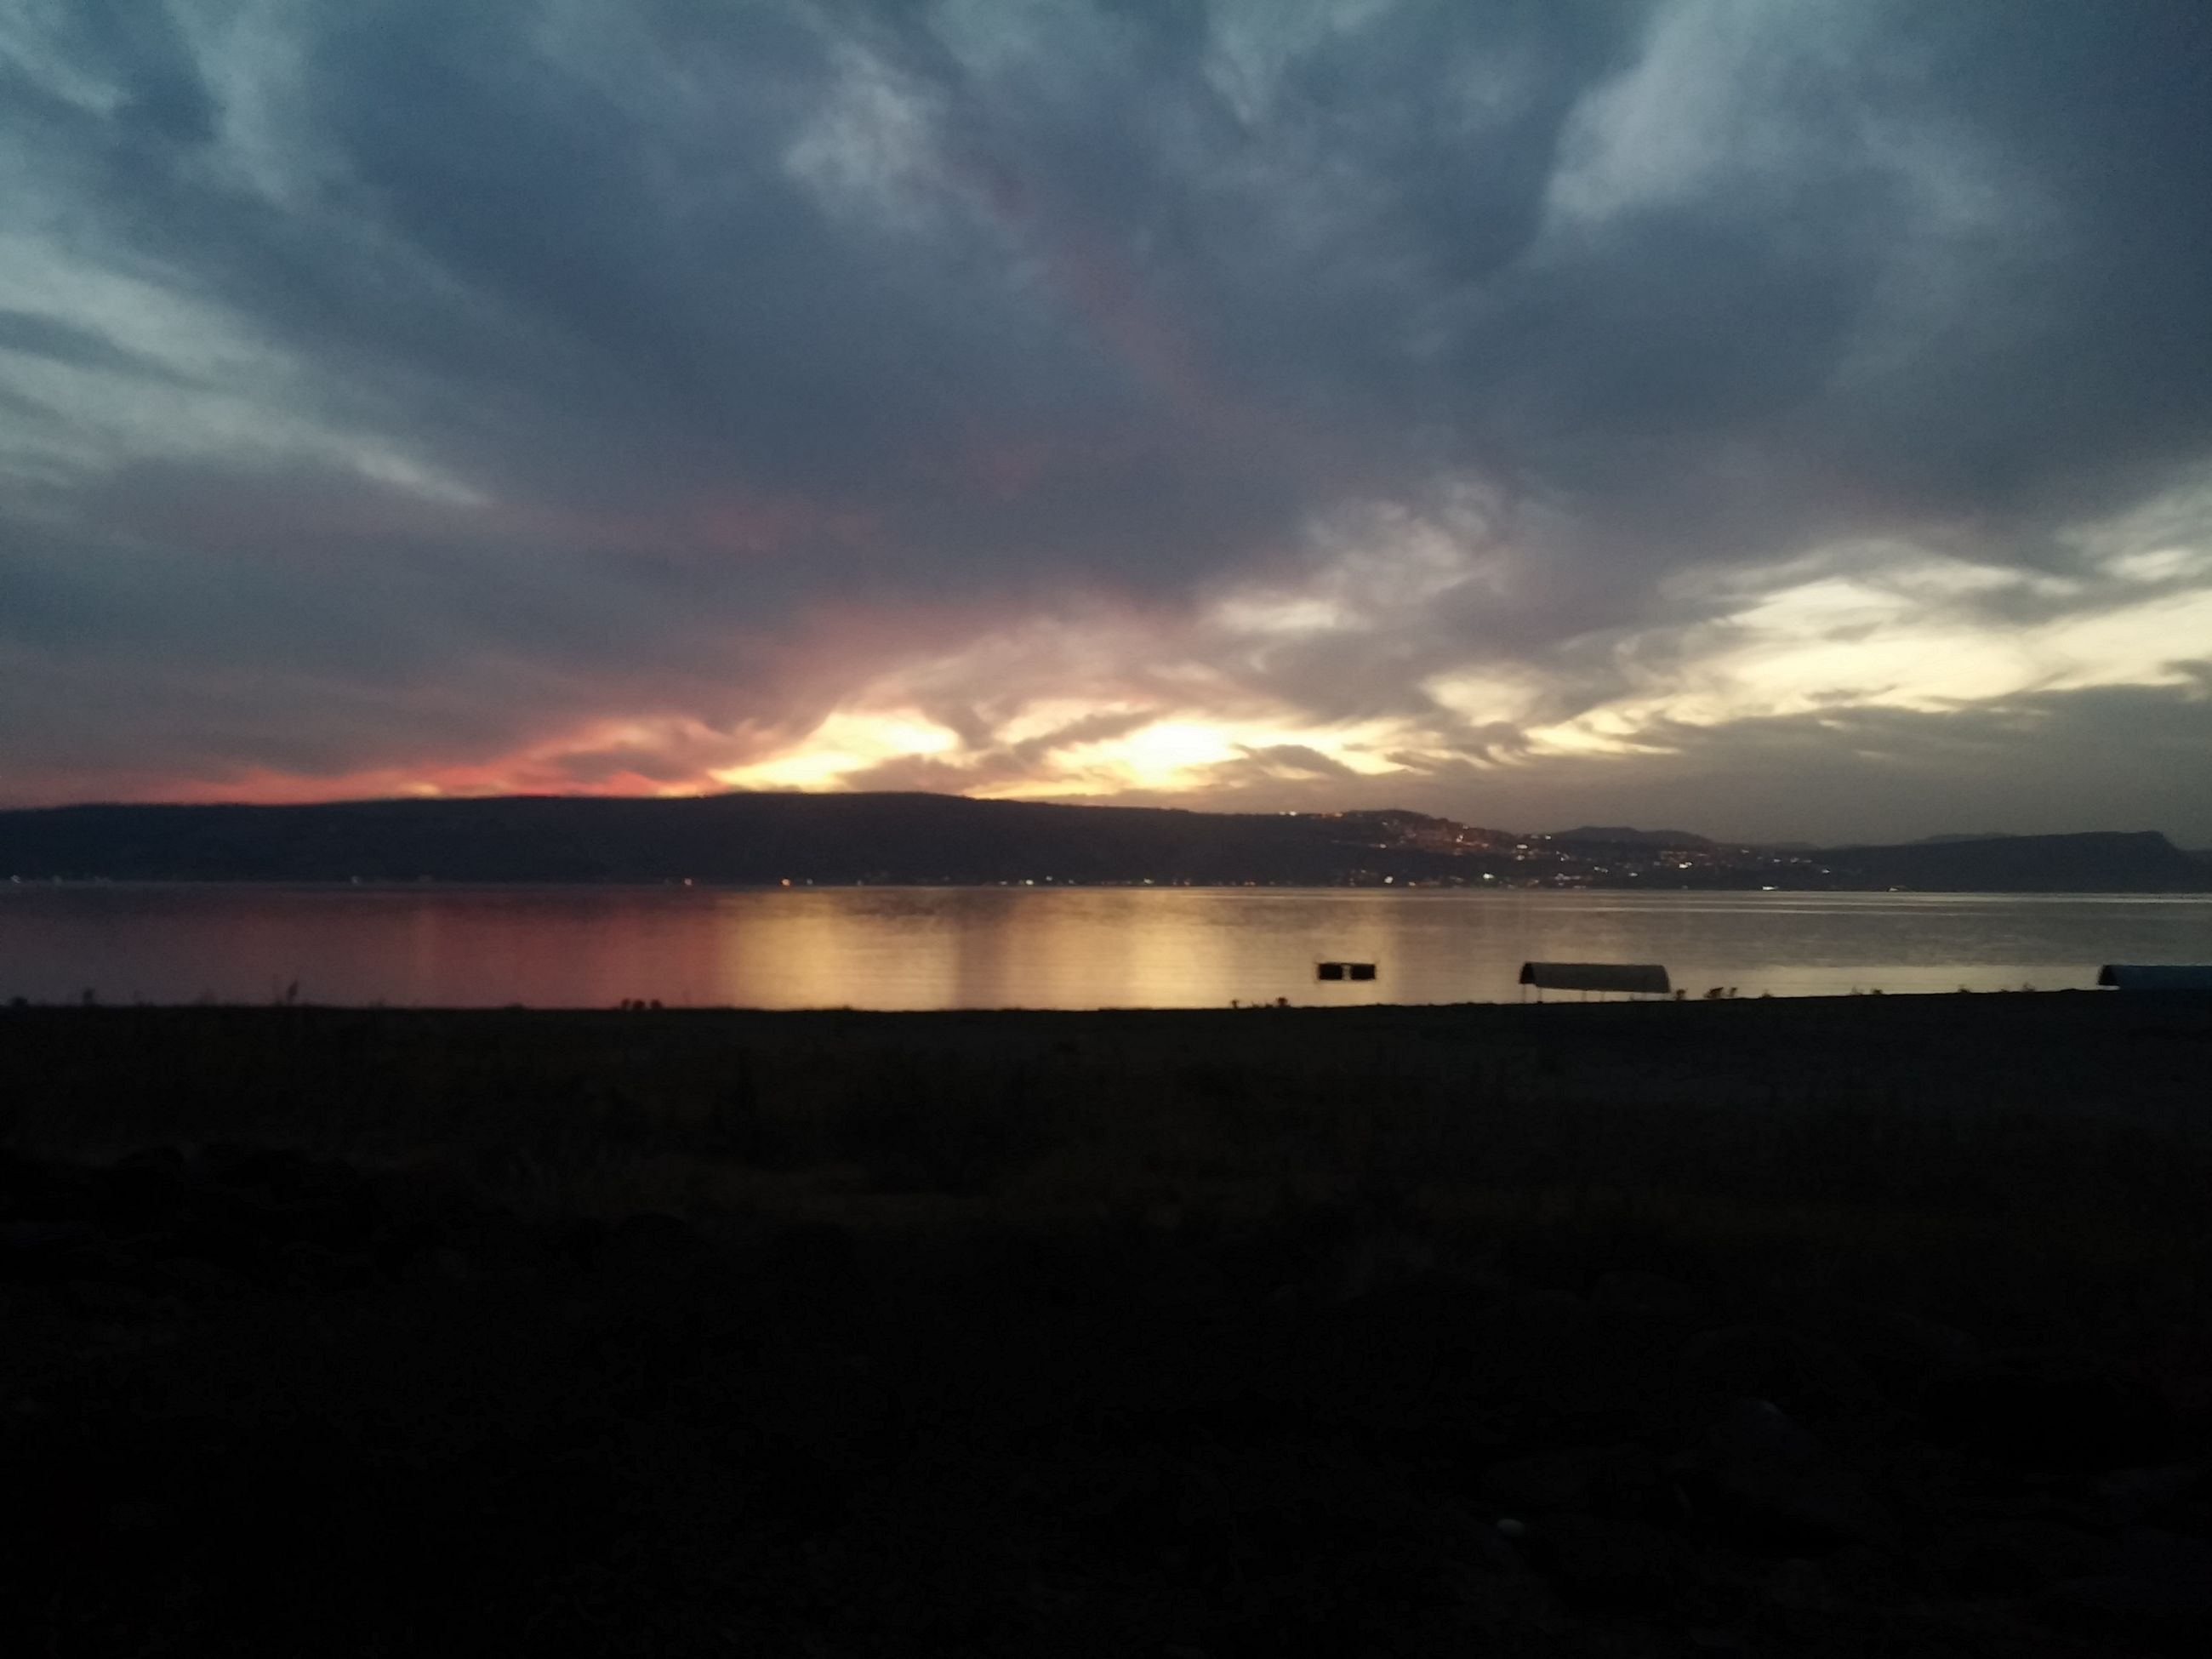 sky, sunset, tranquil scene, water, tranquility, scenics, beauty in nature, cloud - sky, lake, silhouette, nature, cloud, idyllic, cloudy, dusk, sea, calm, mountain, reflection, non-urban scene